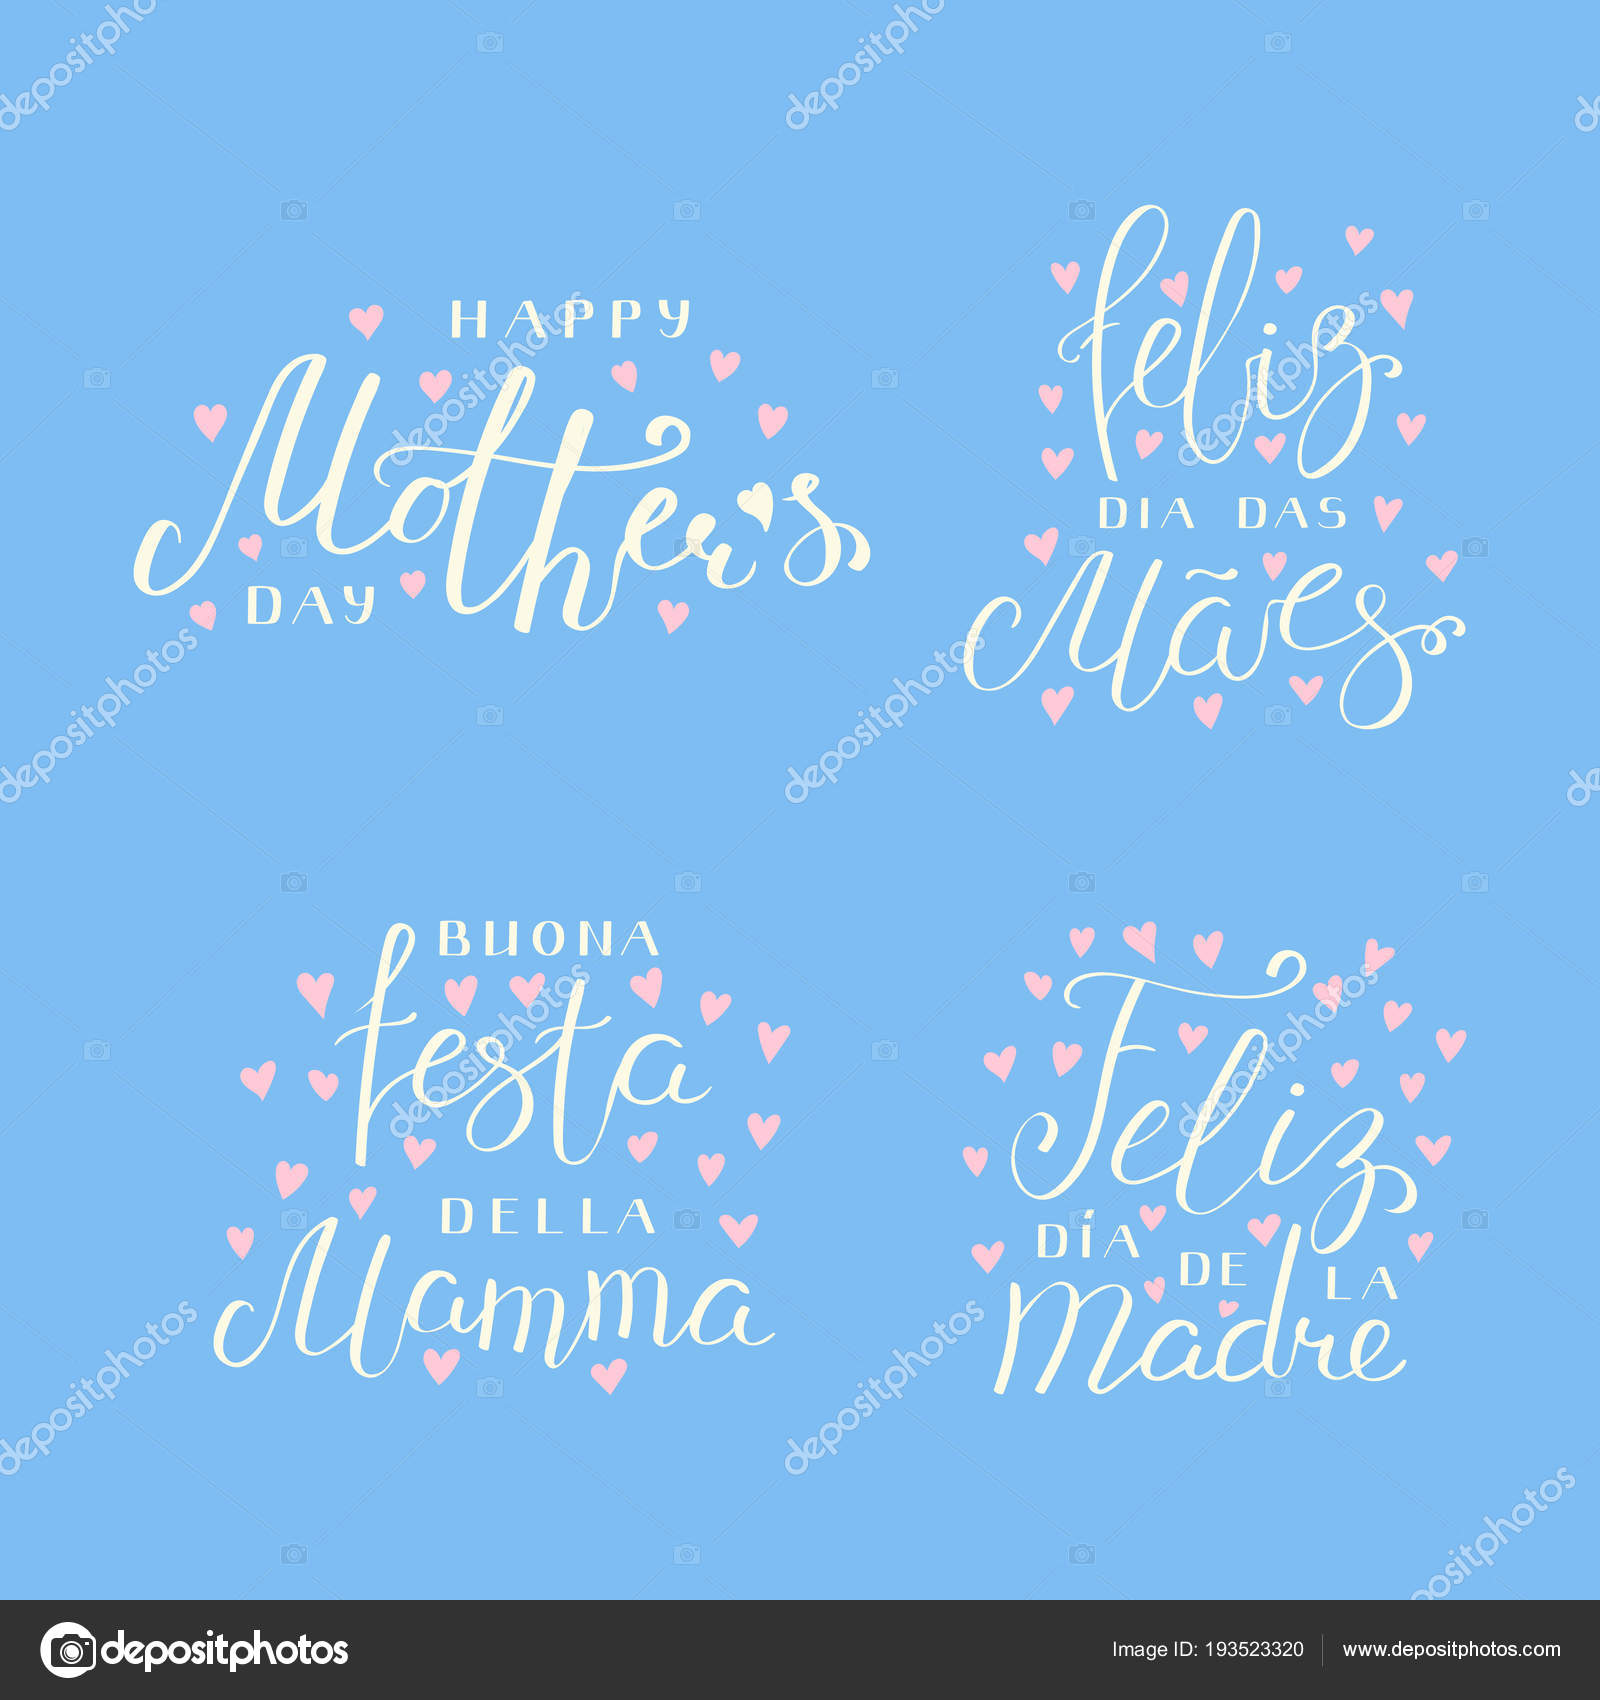 Happy mothers day quotes in spanish | Set Hand Written